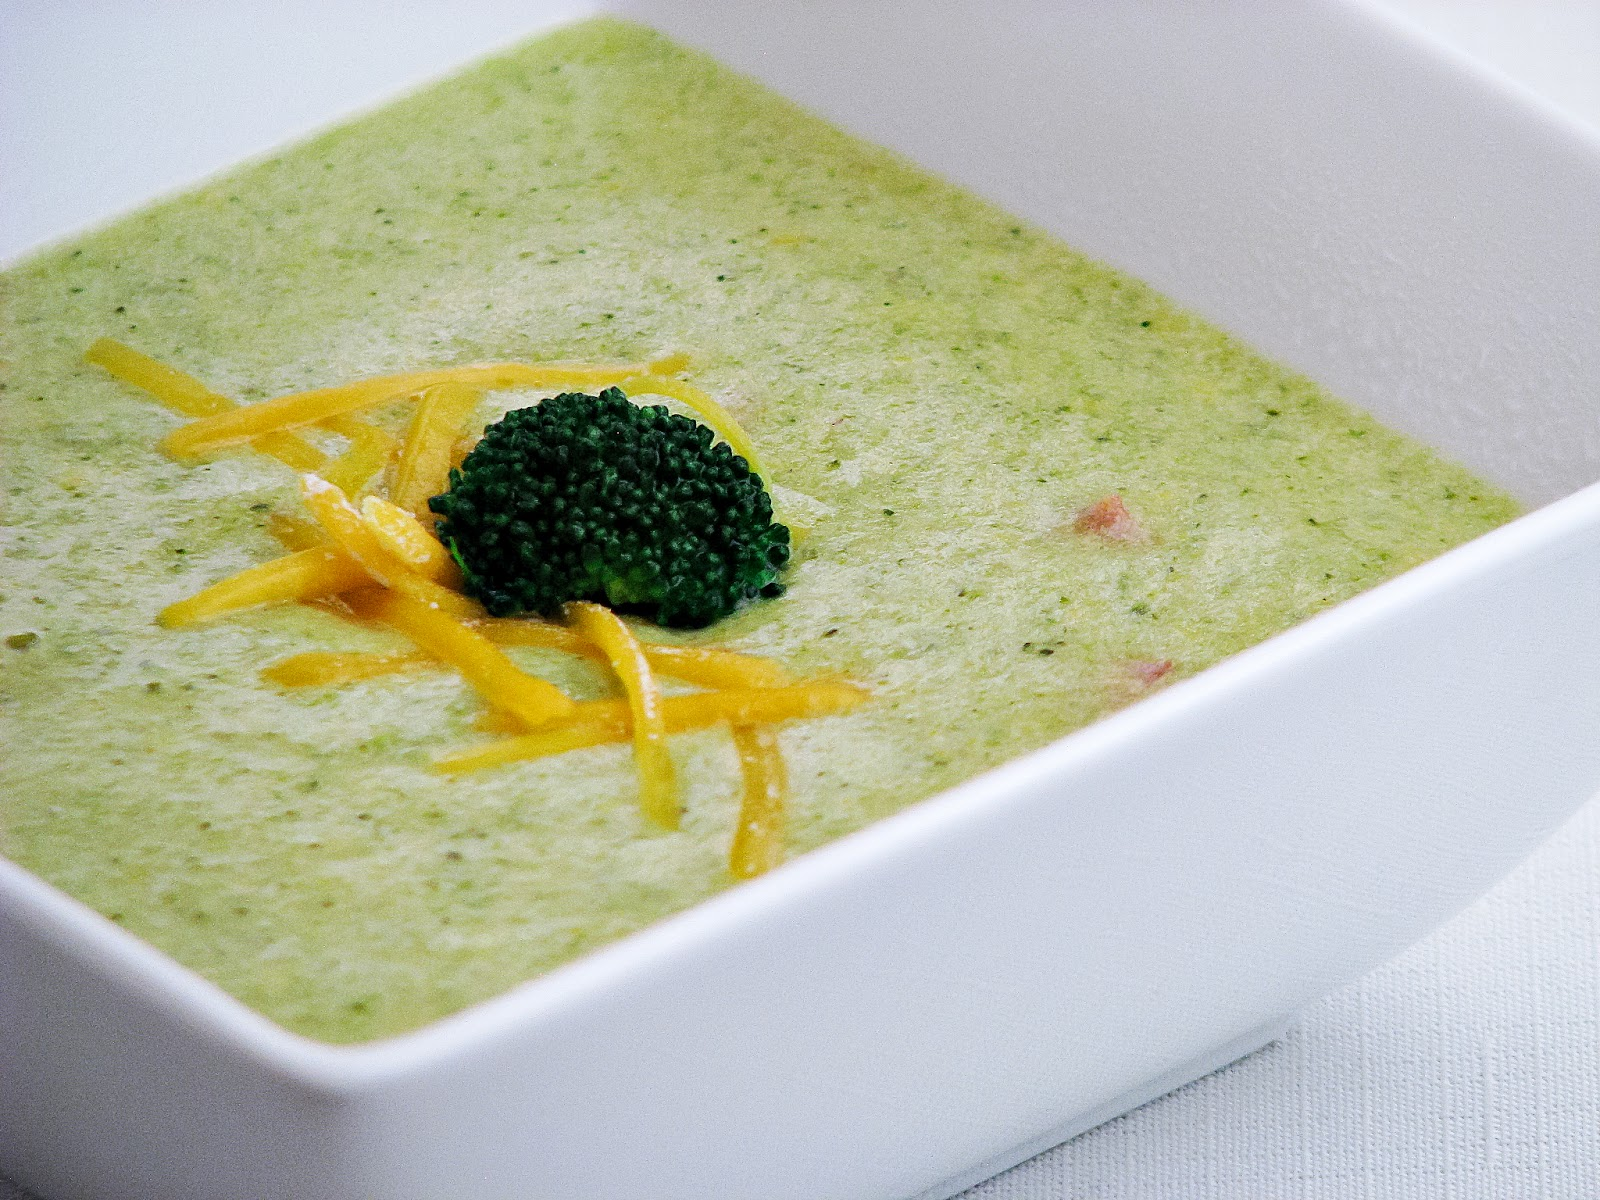 how to make broccoli taste good without adding calories